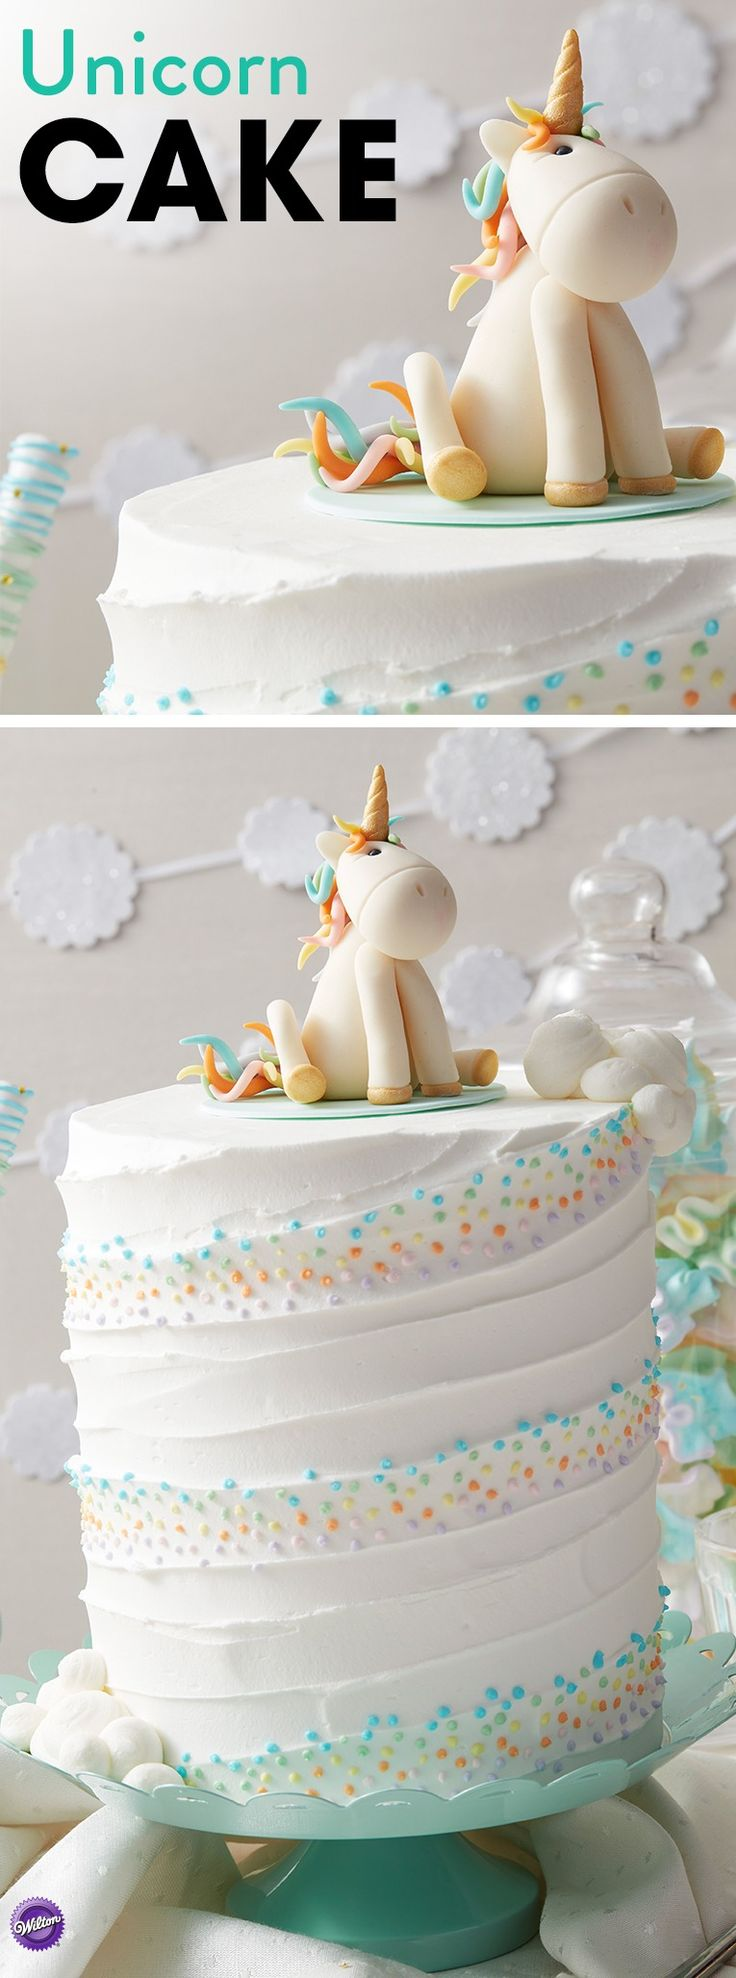 Make all your little one's wishes come true with this Whimsical Unicorn Cake that is great for birthdays and baby showers. With step-by-step instructions on how to make your own unicorn figurine, this Unicorn Cake project is fun for those who are looking for their next baking challenge.